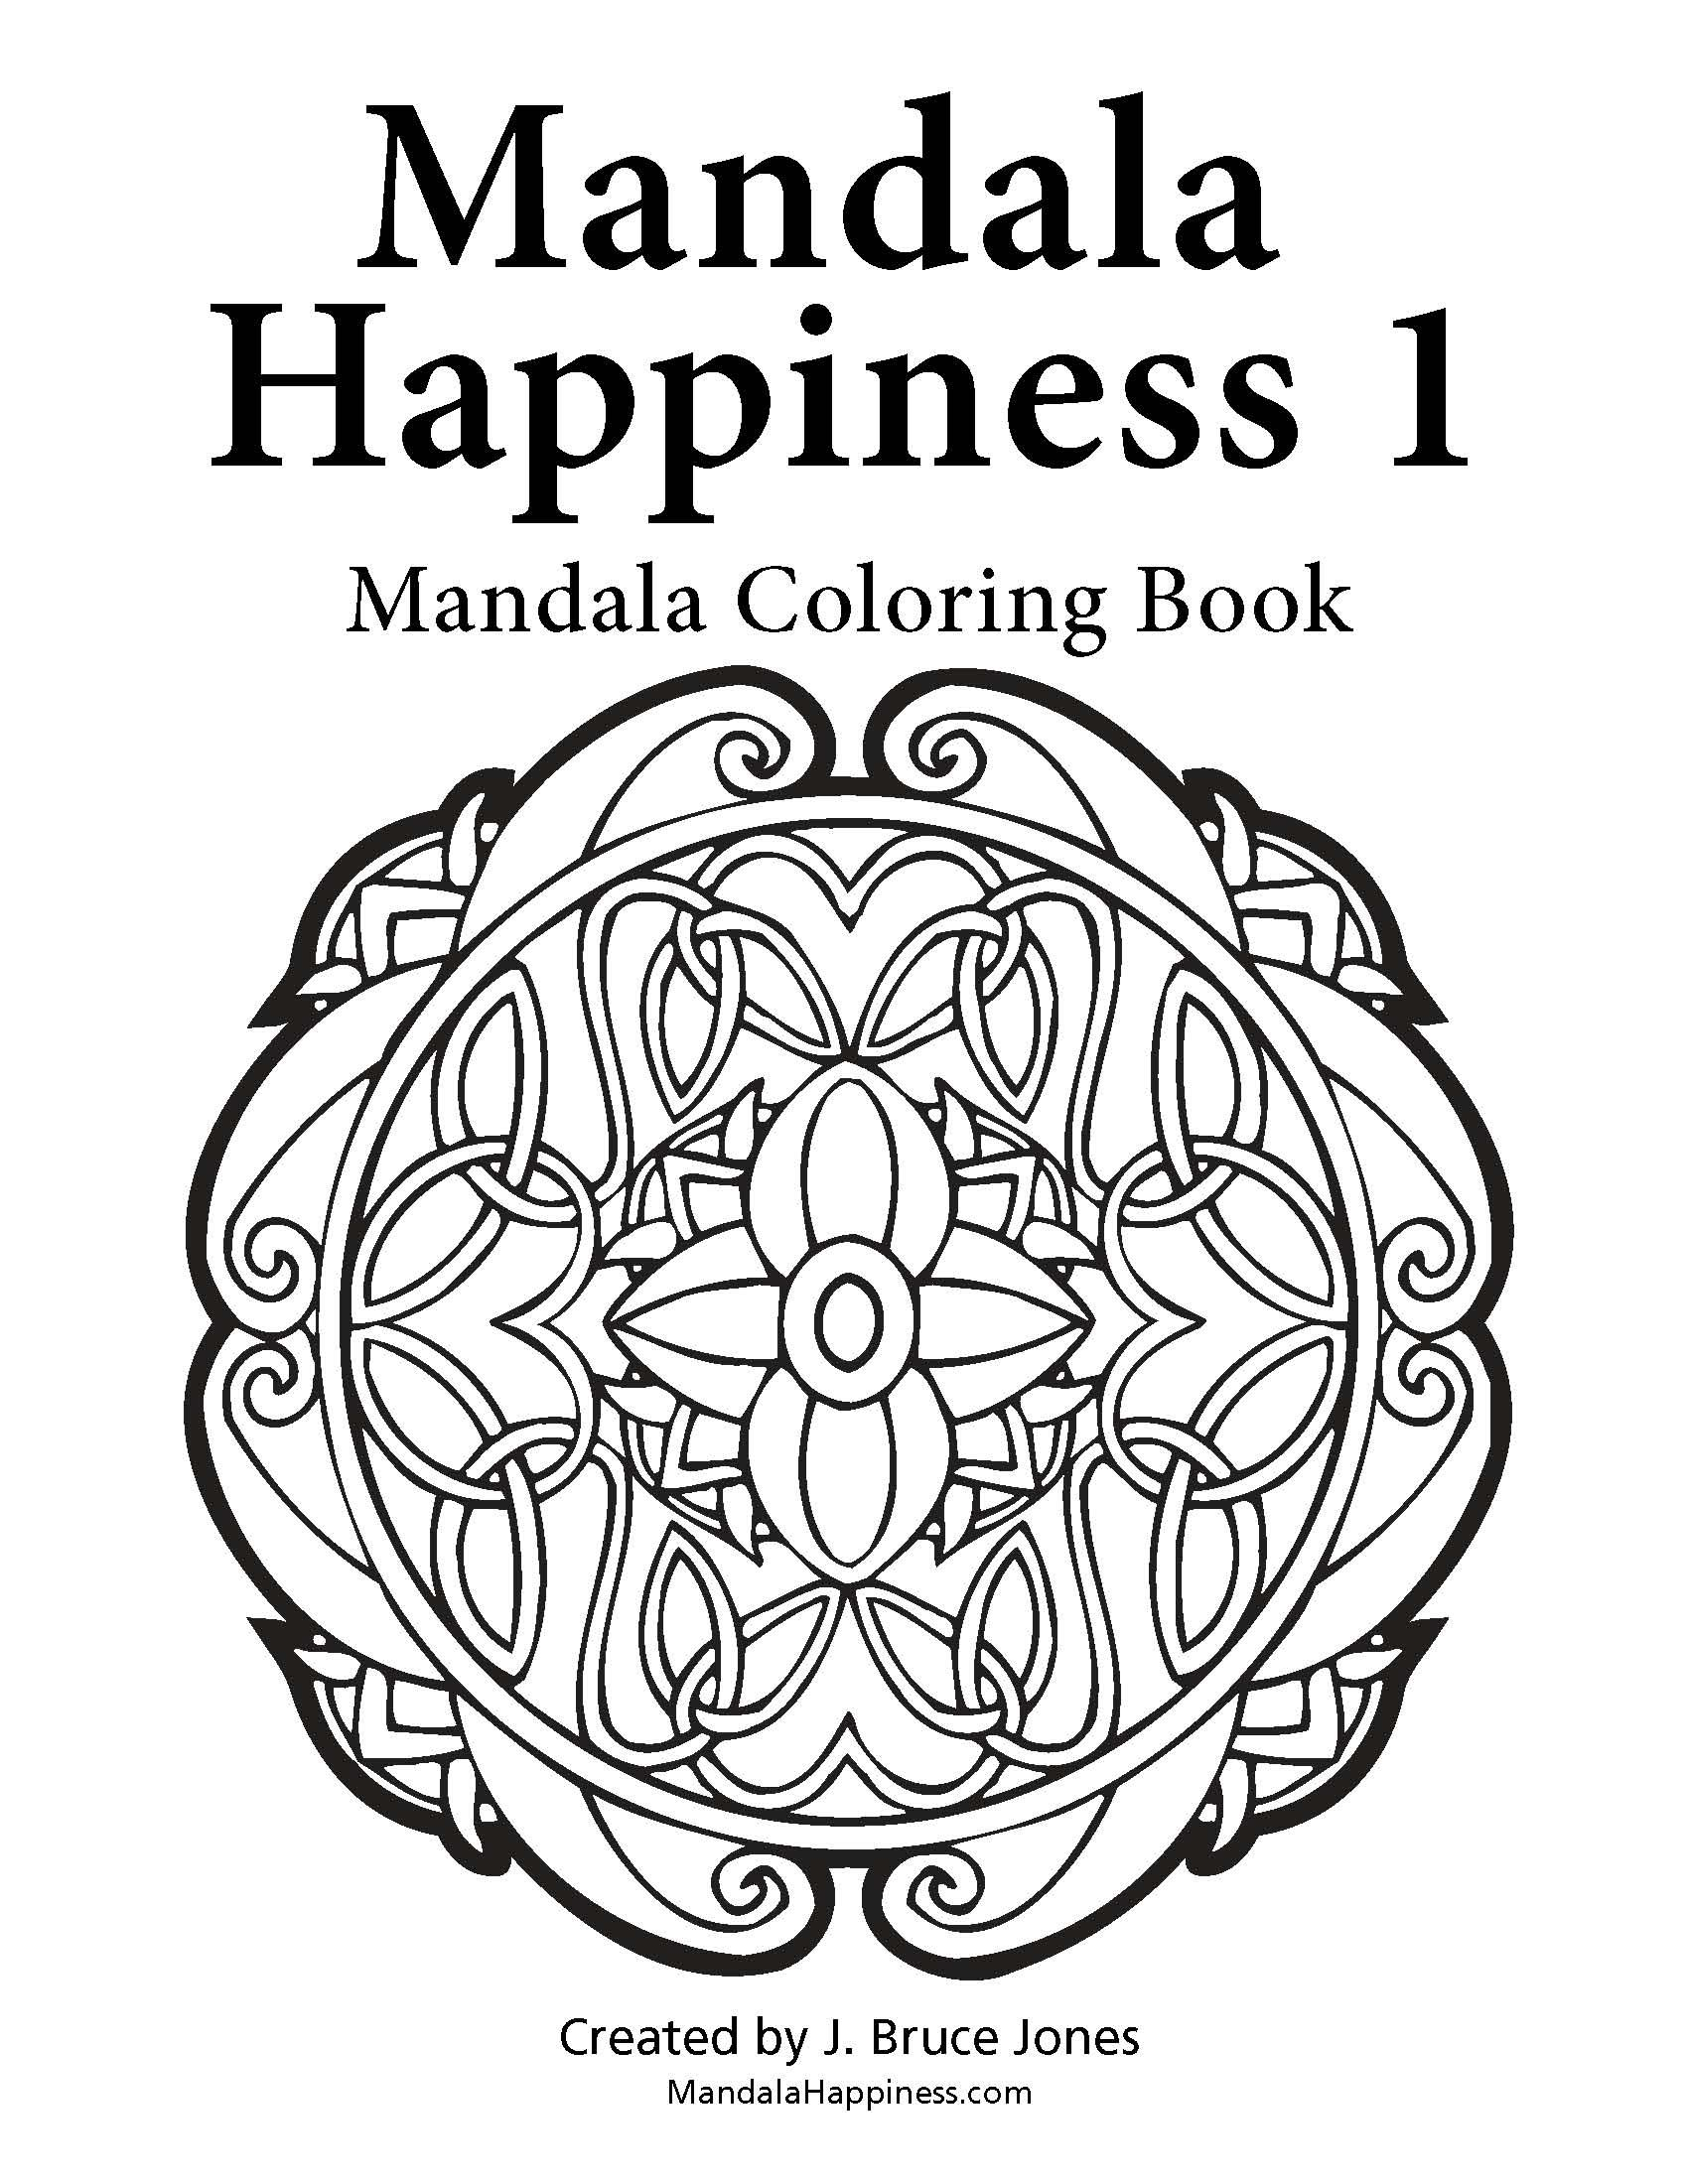 Coloring book grown up - Title Page From The Adult Grown Up Coloring Book Mandala Happiness From J Bruce Jones